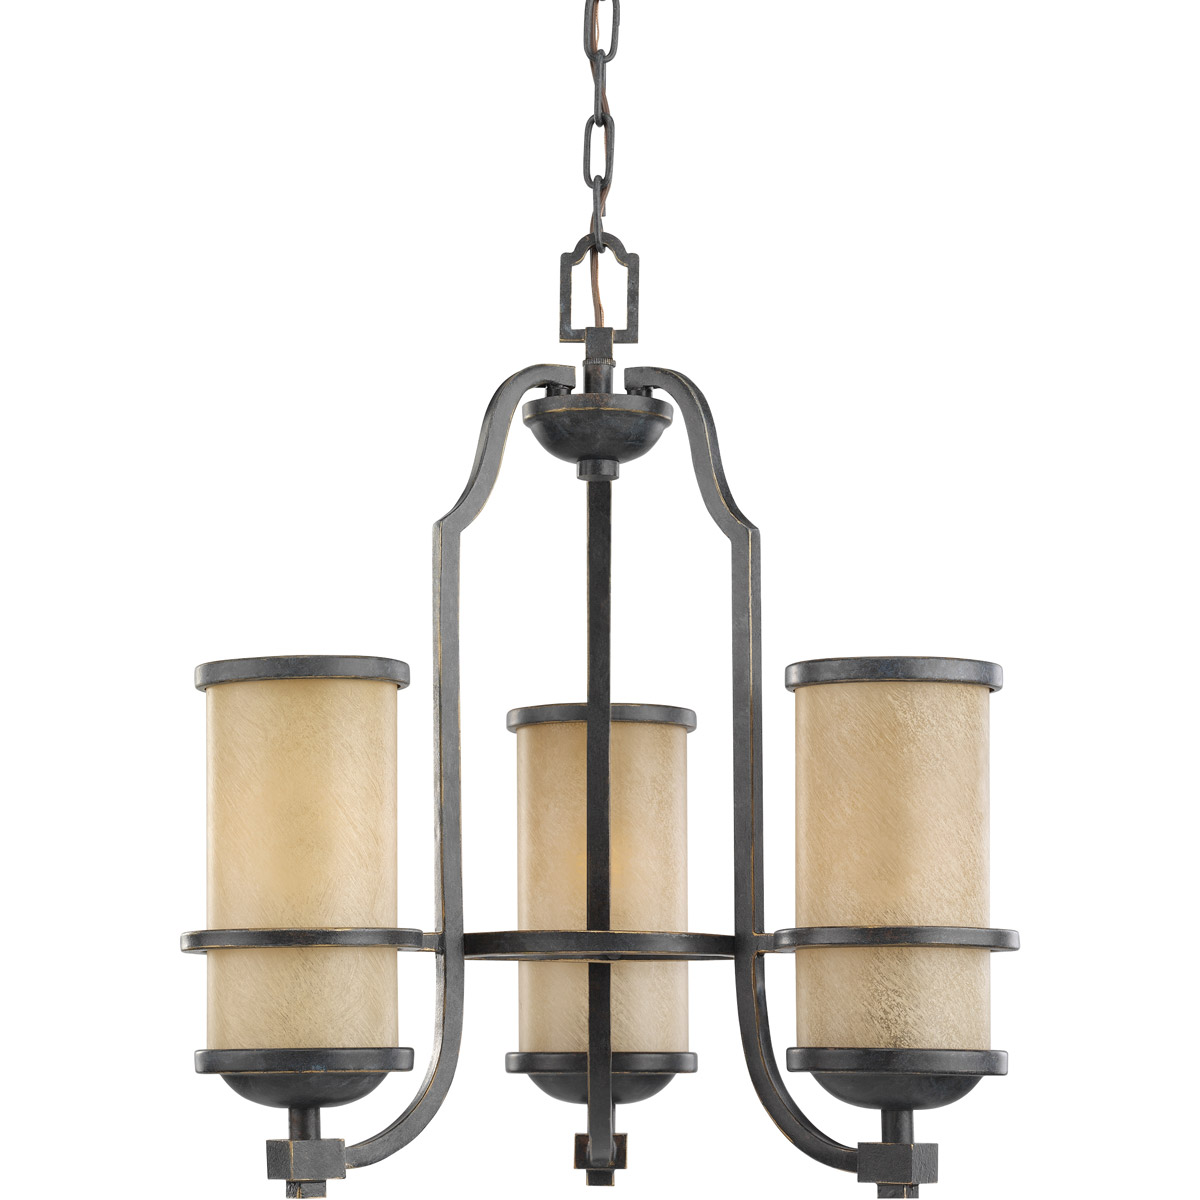 Sea Gull Lighting Roslyn 3 Light Chandelier in Flemish Bronze 31520-845 photo